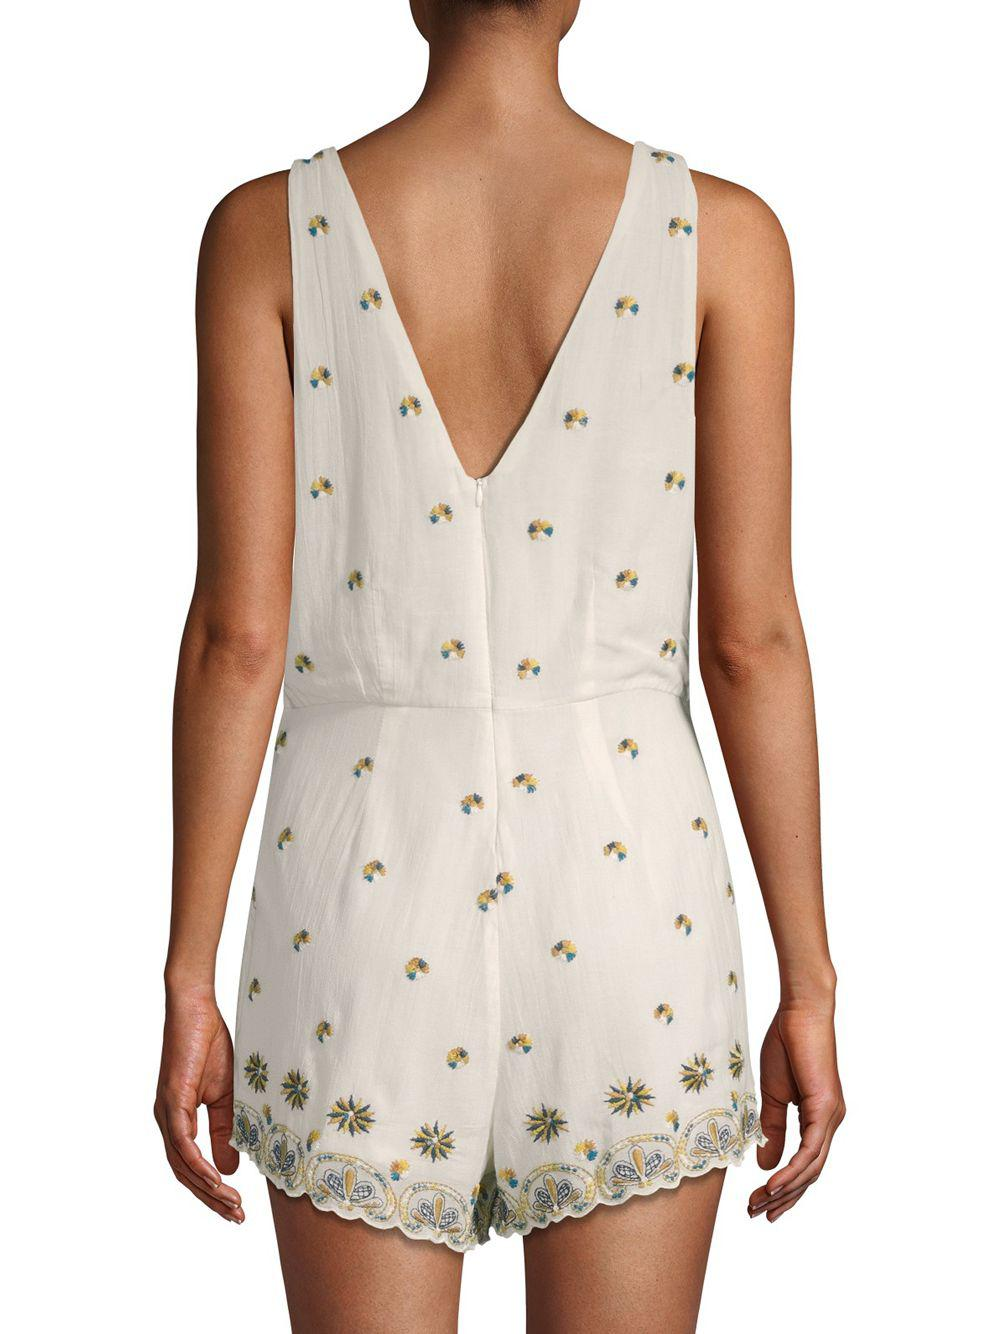 2ec776524a6 Free People - White Margarita Embroidered Romper - Lyst. View fullscreen